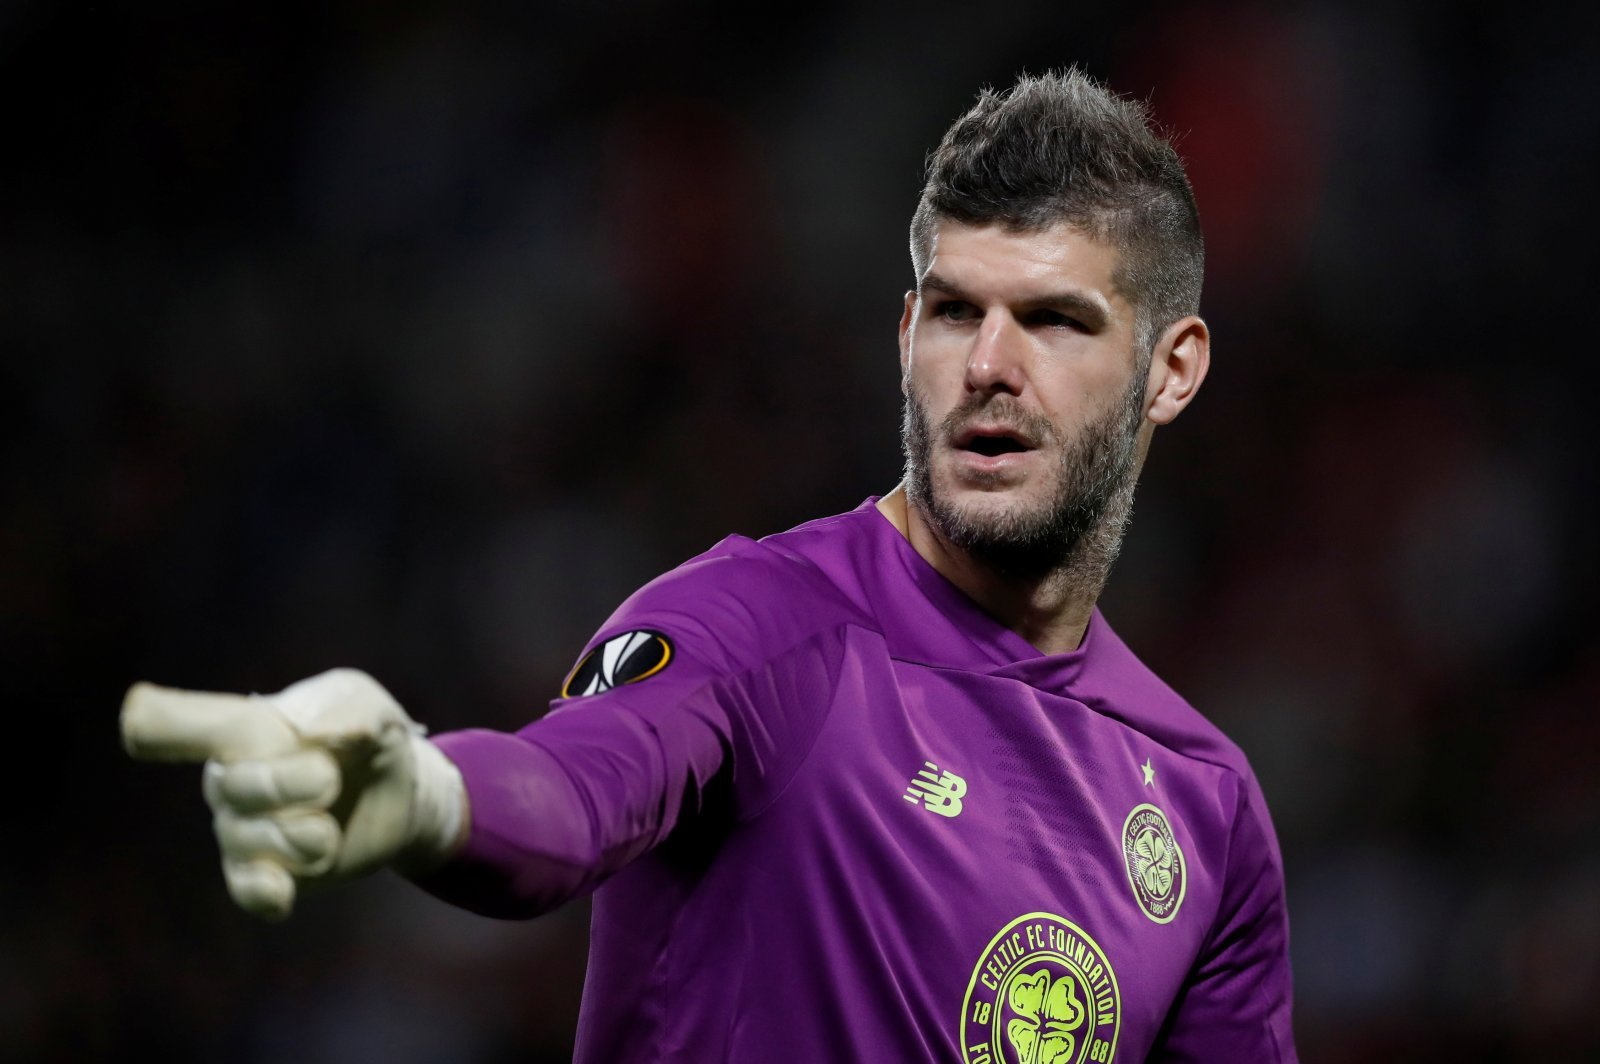 Celtic: Fraser Forster's loan move did not include option to buy